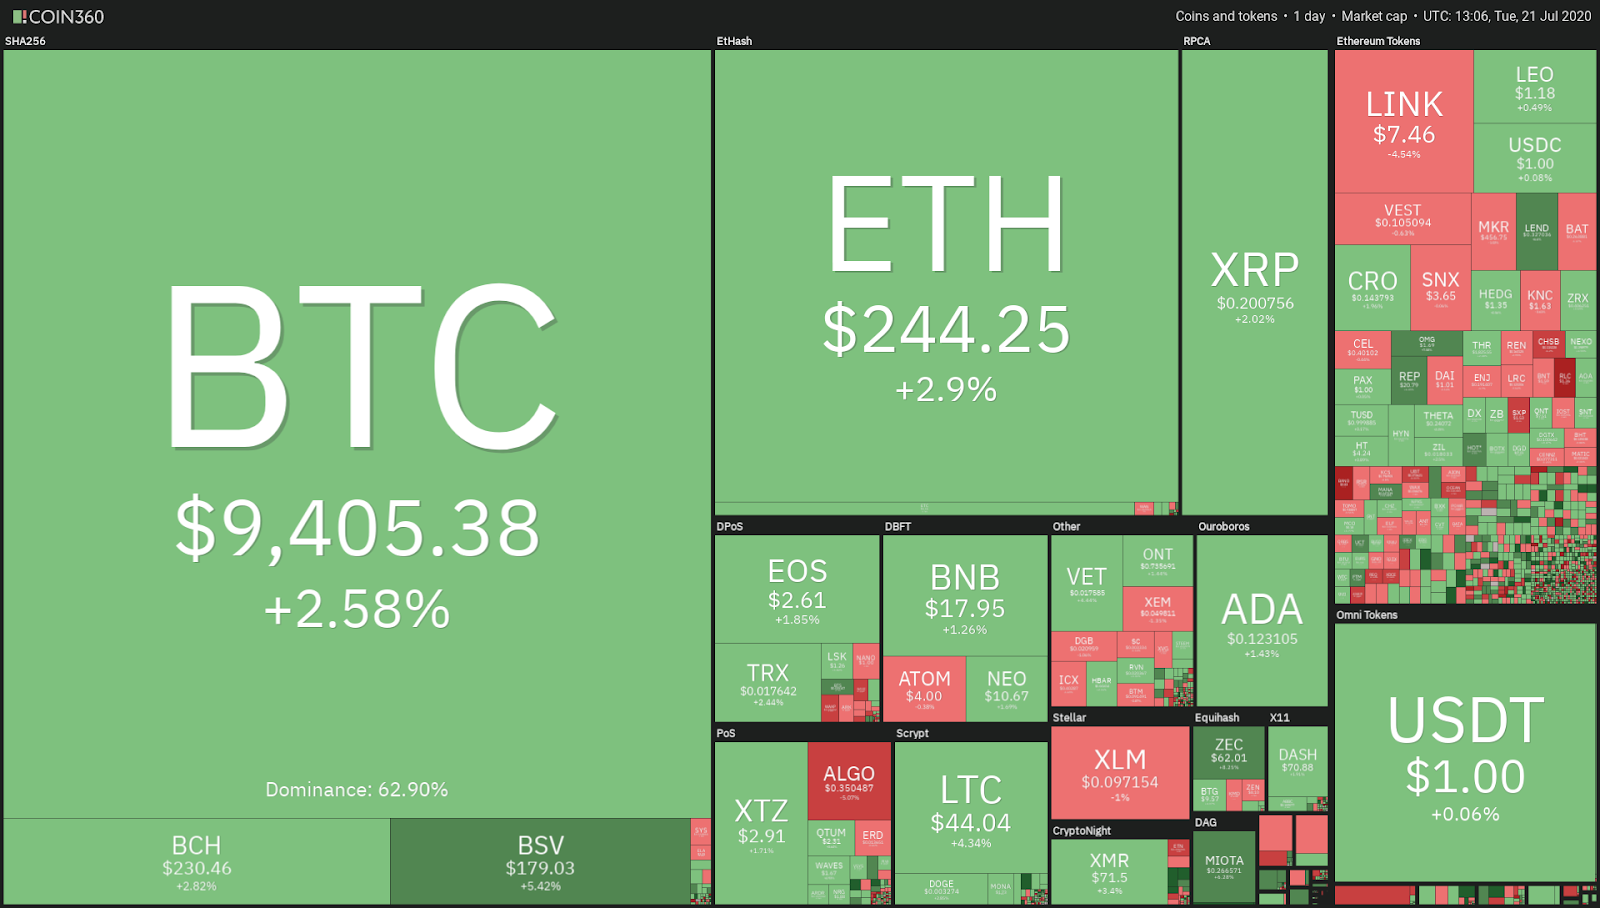 Daily performance of the cryptocurrency market. Source: TradingView